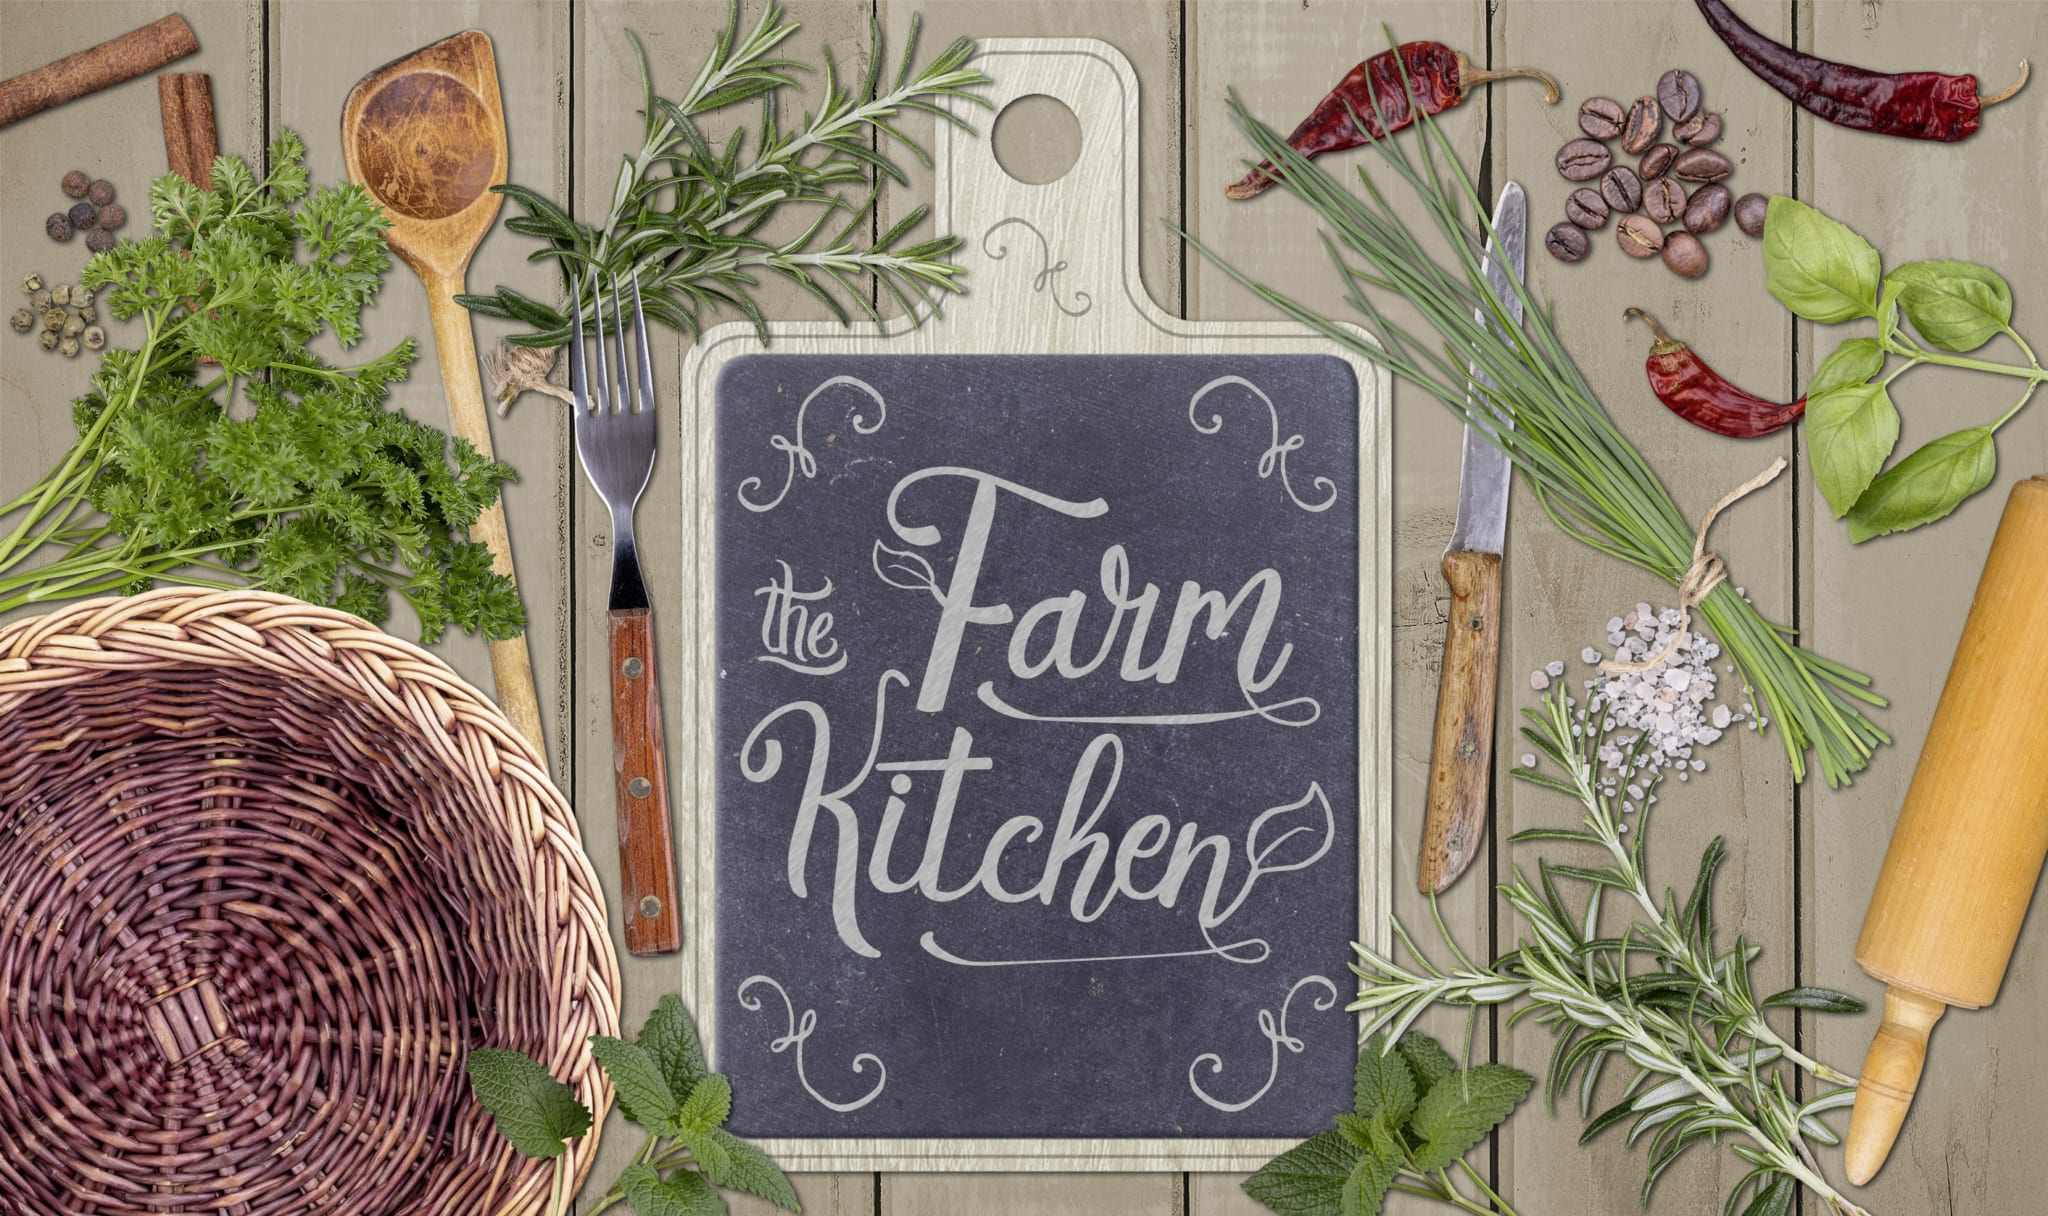 The Farm Kitchen at Swiss Farm